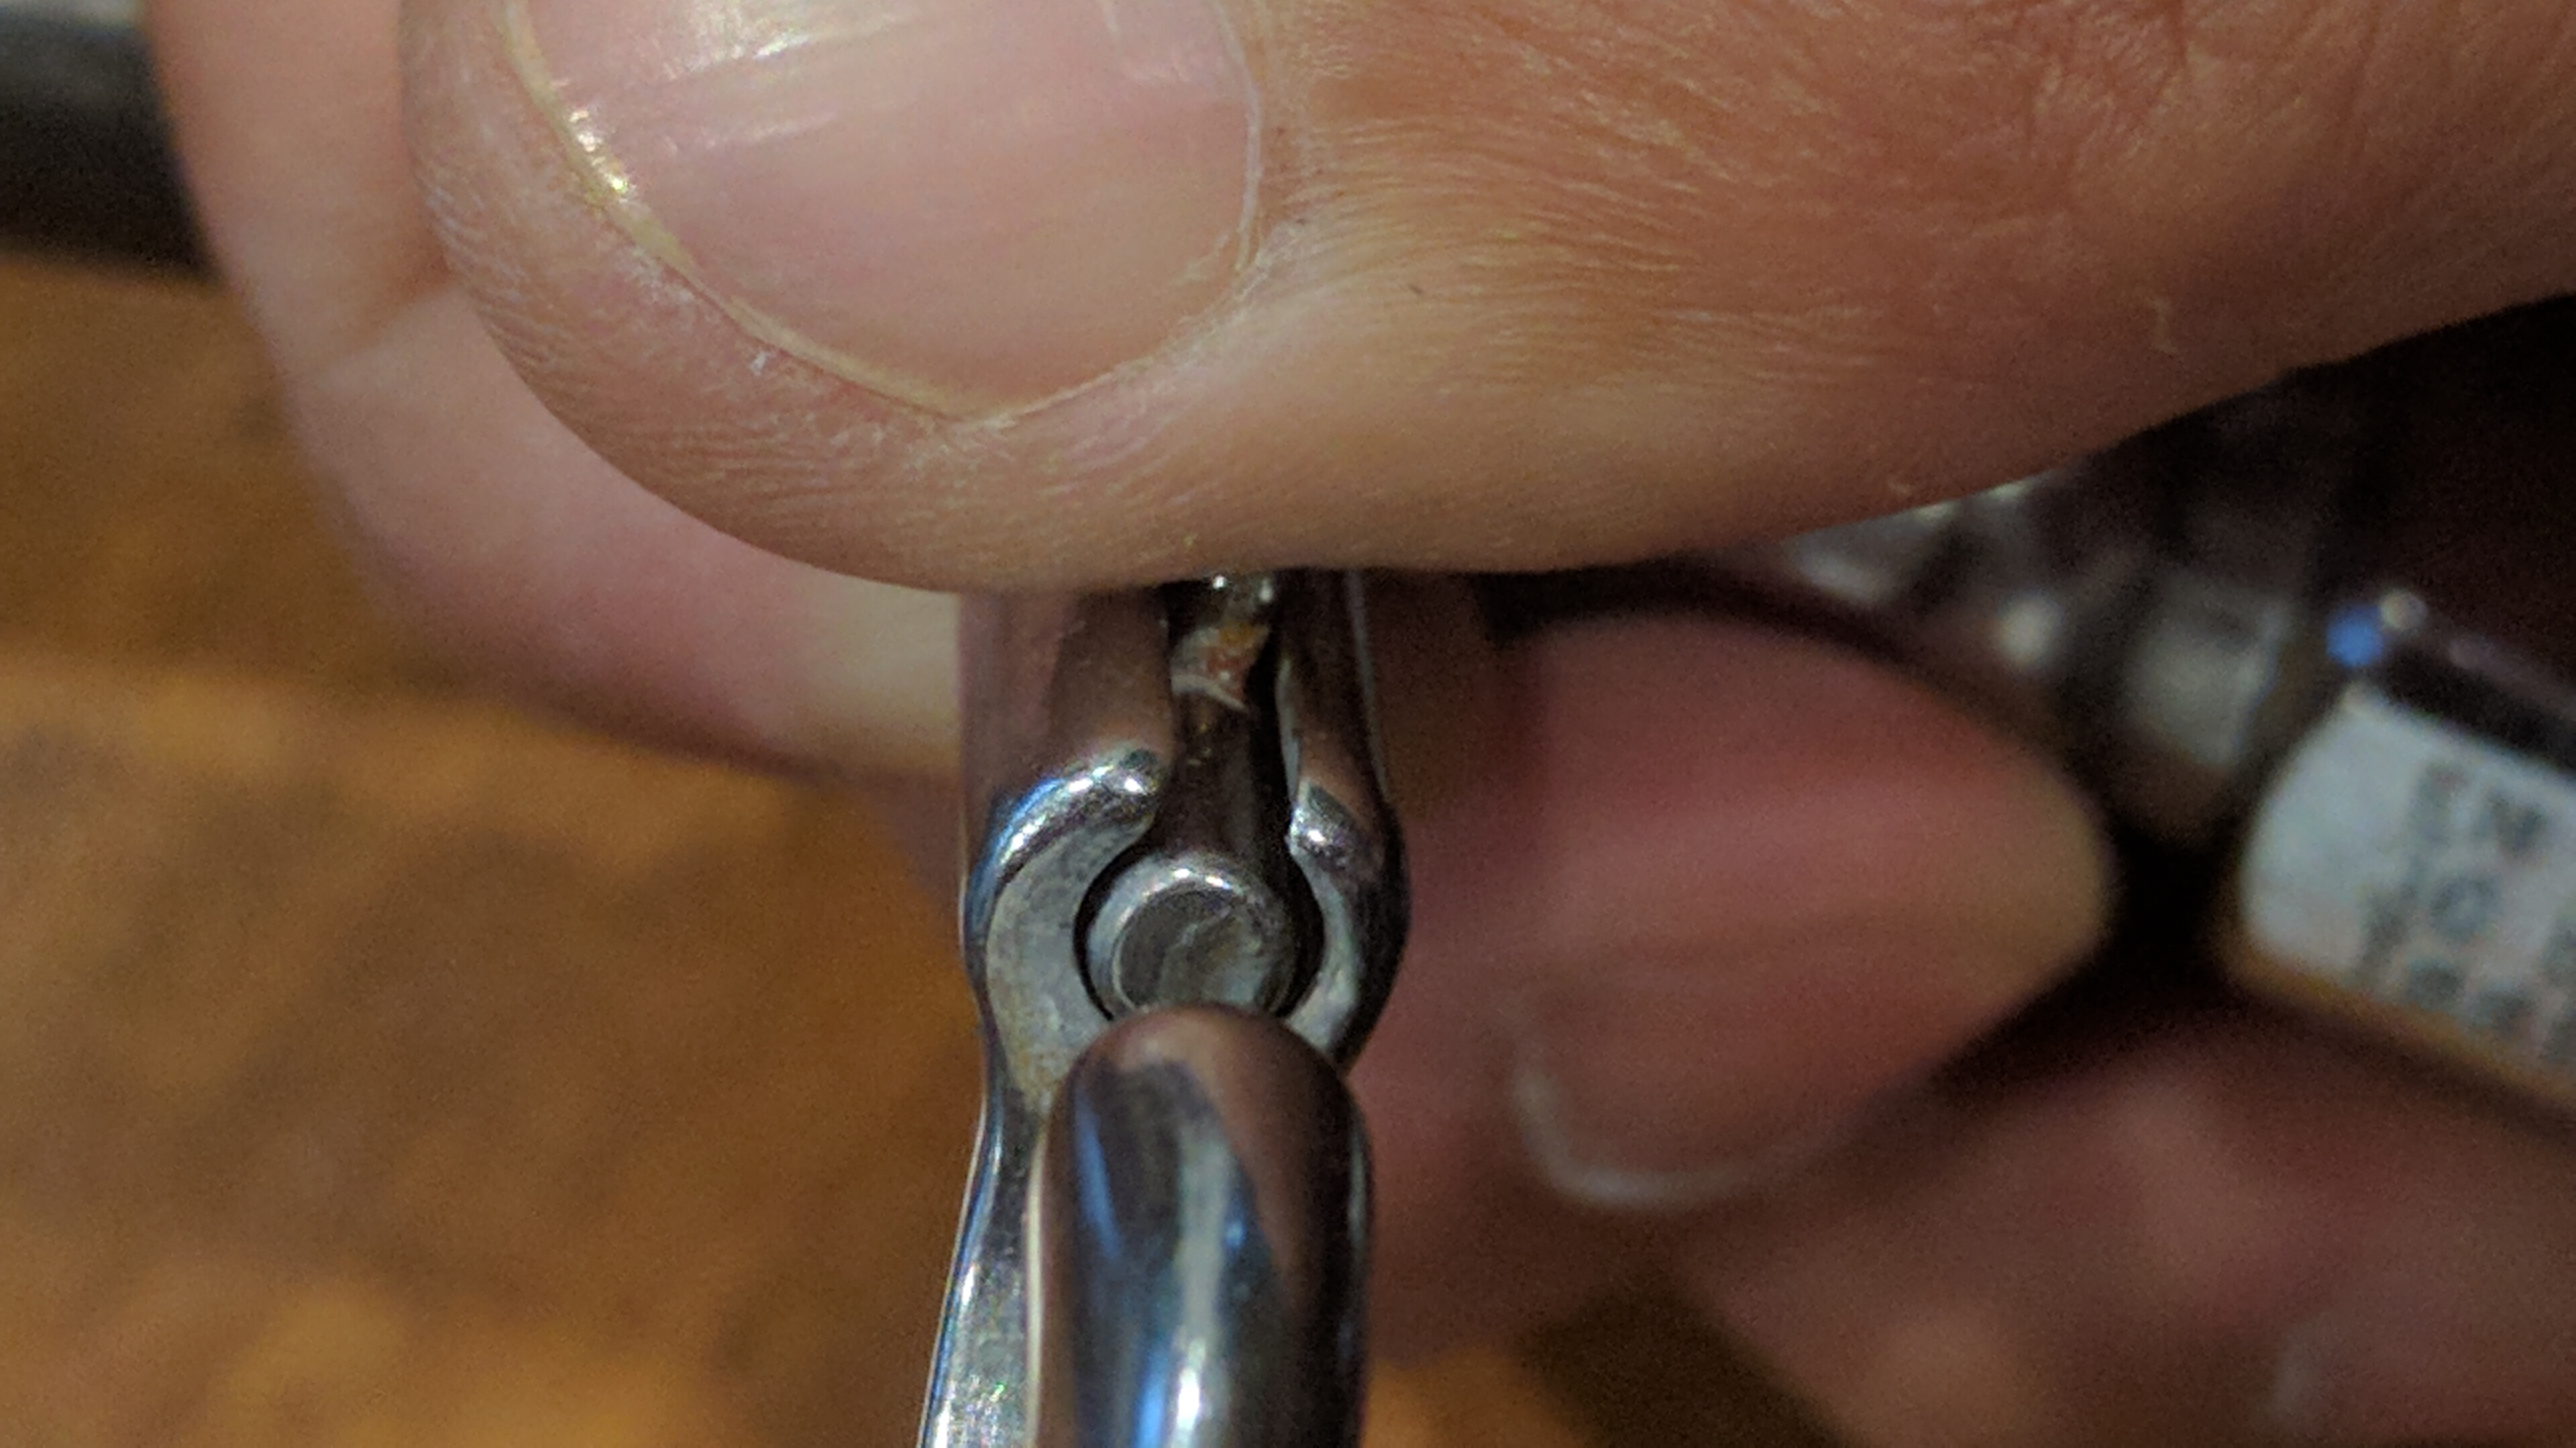 The proper way to hold a bolt snap open.